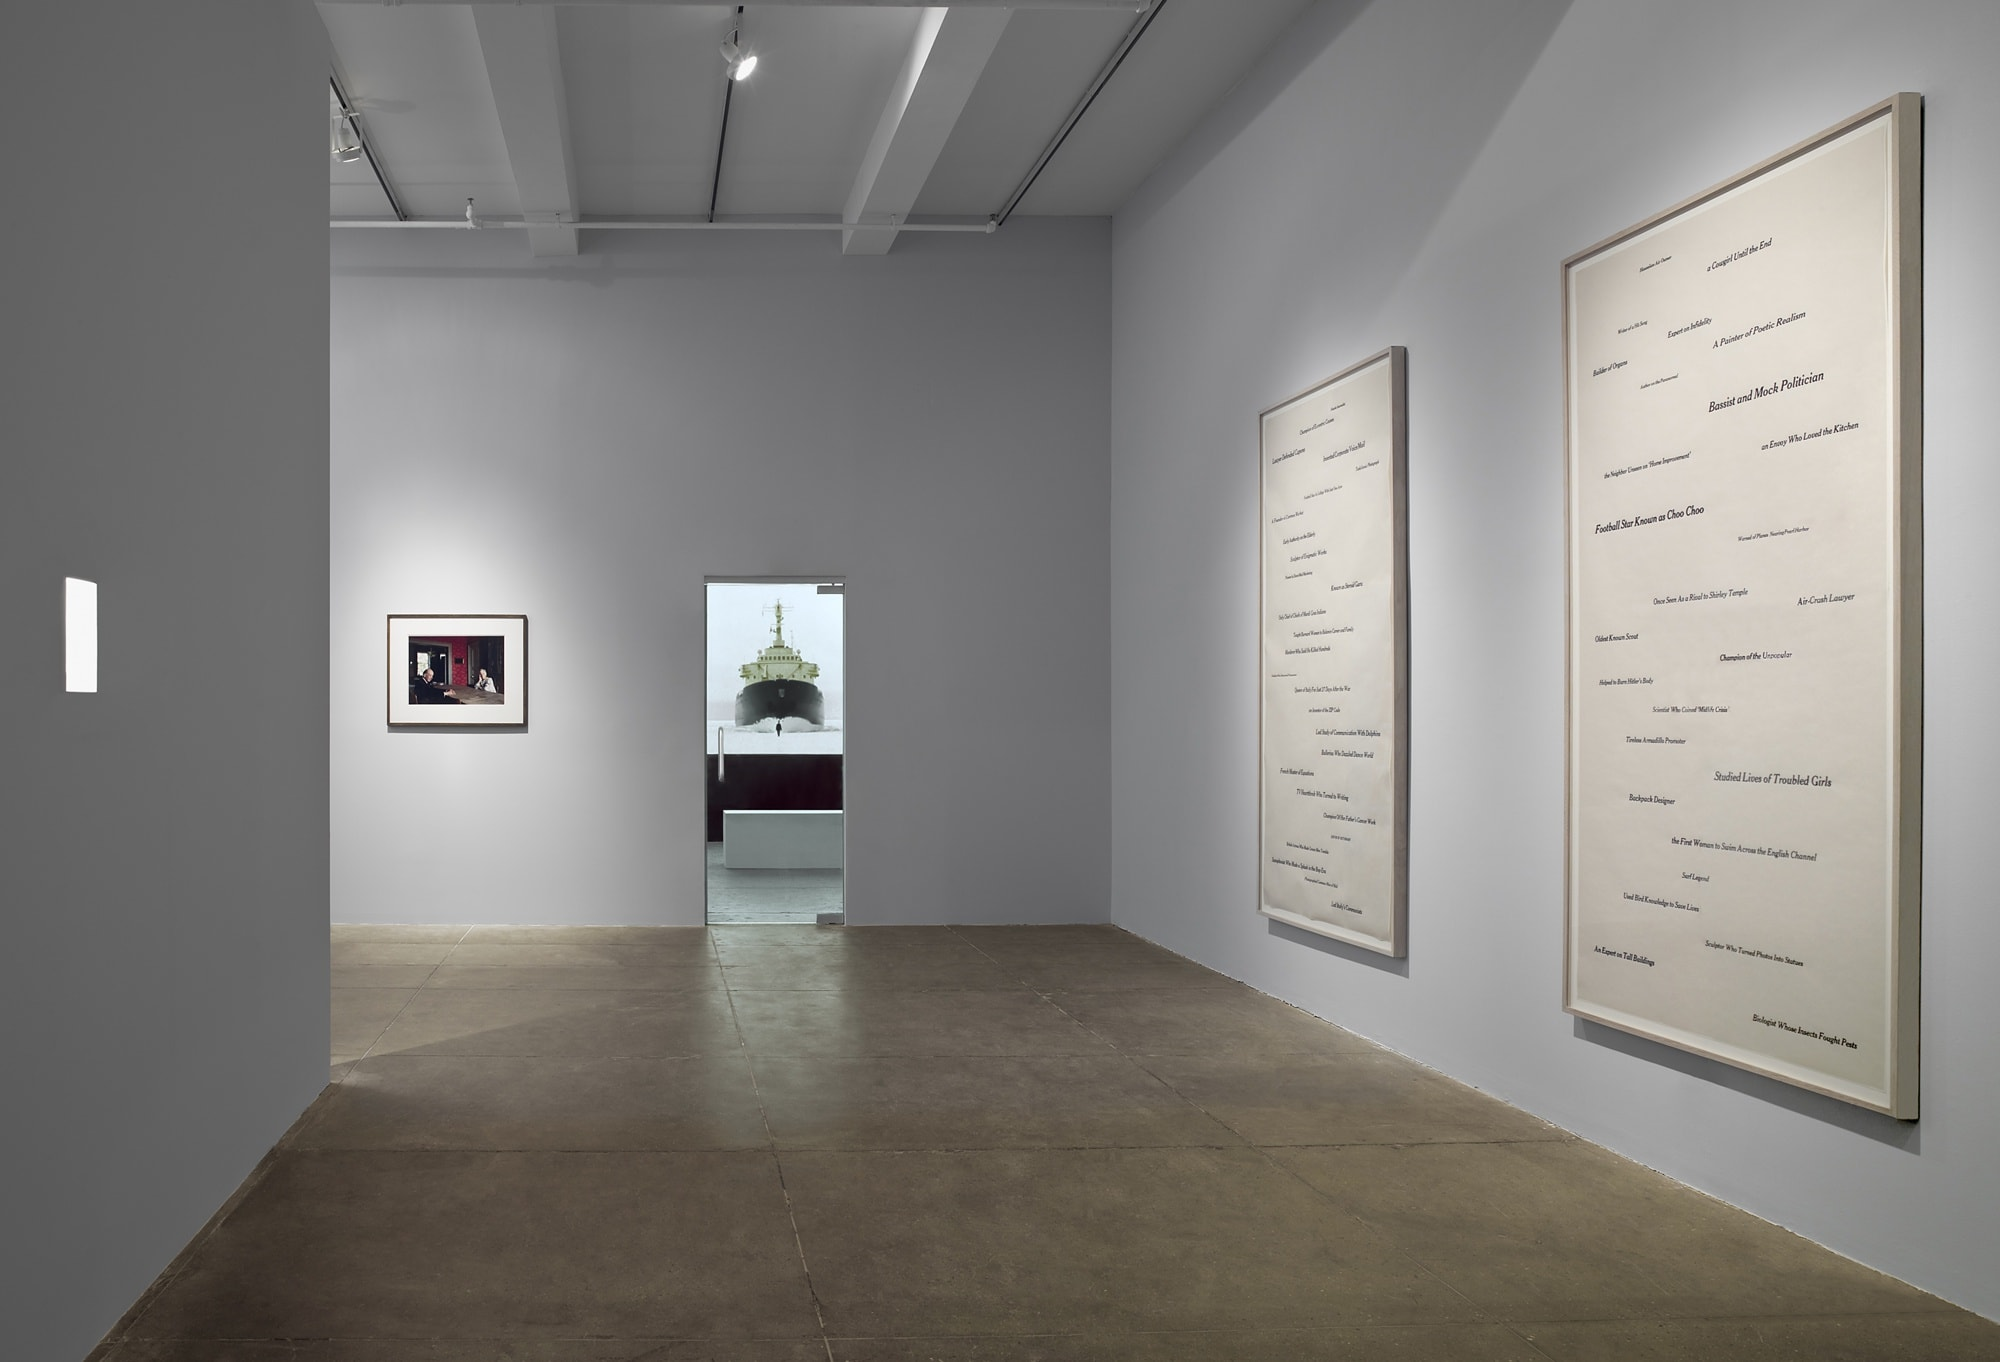 On the left wall there is a square of light. In the center is a model ship visible through a doorway, next to a framed photograph.  On the right wall hang two framed works with text on paper.